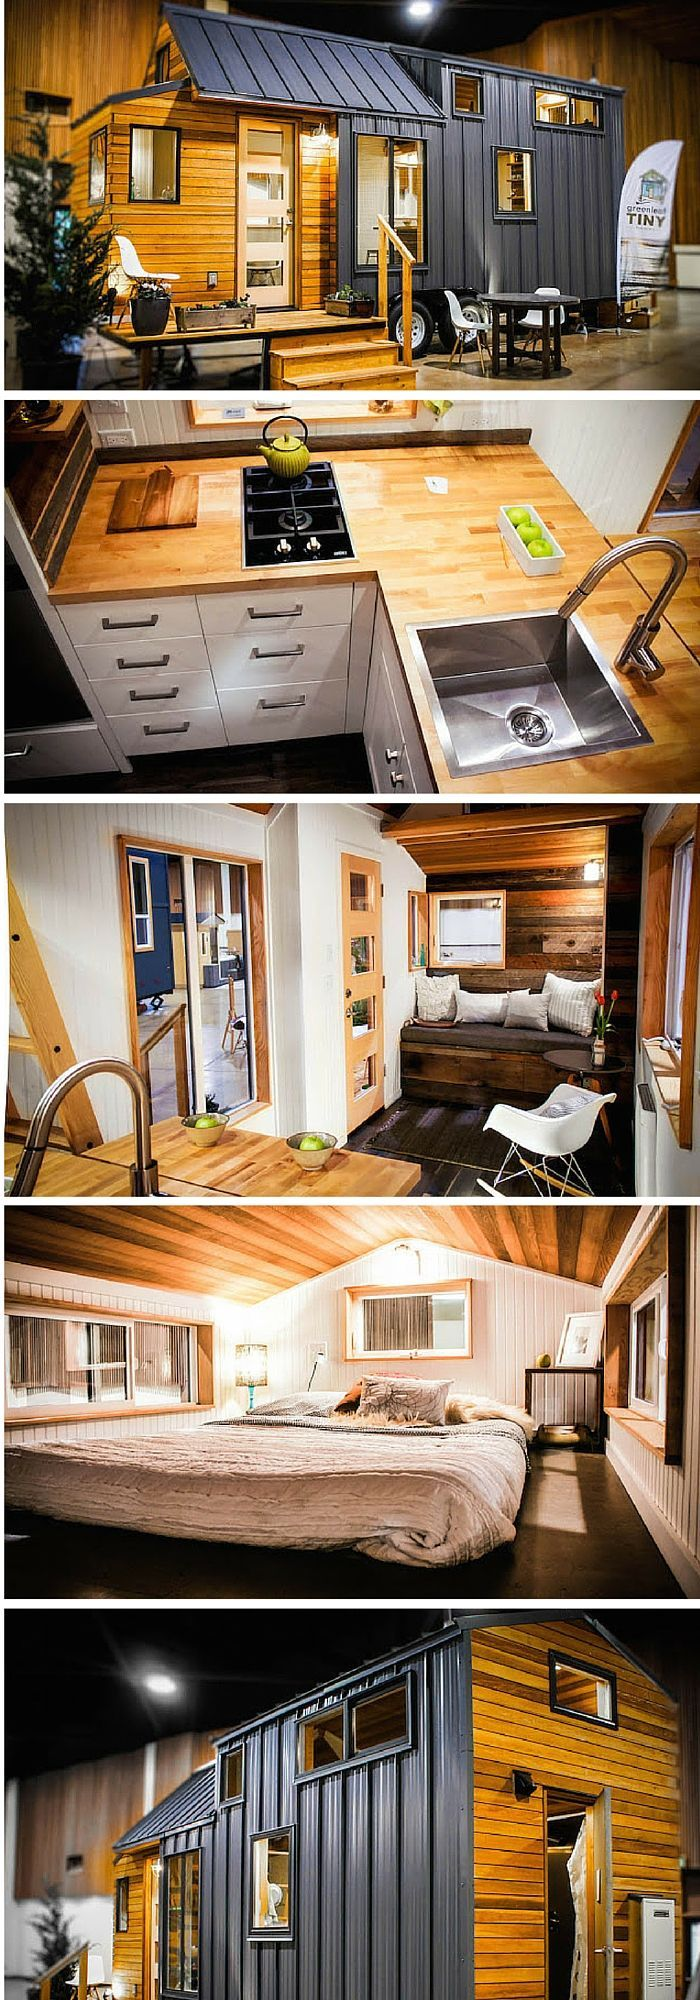 The 25+ best Tiny house on wheels ideas on Pinterest | Tiny homes ...